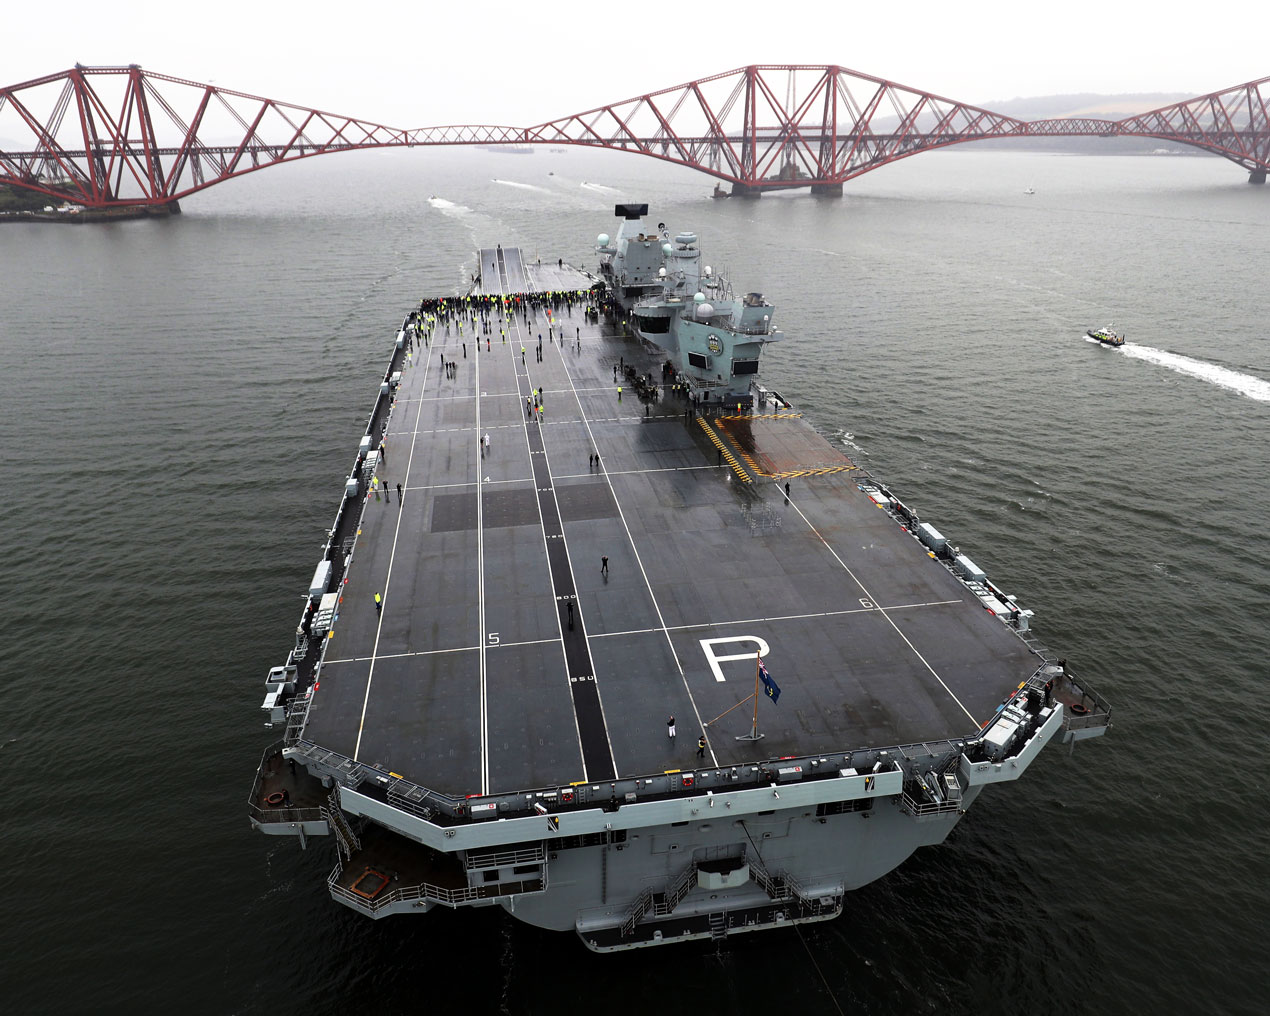 Royal Navy aircraft carriers